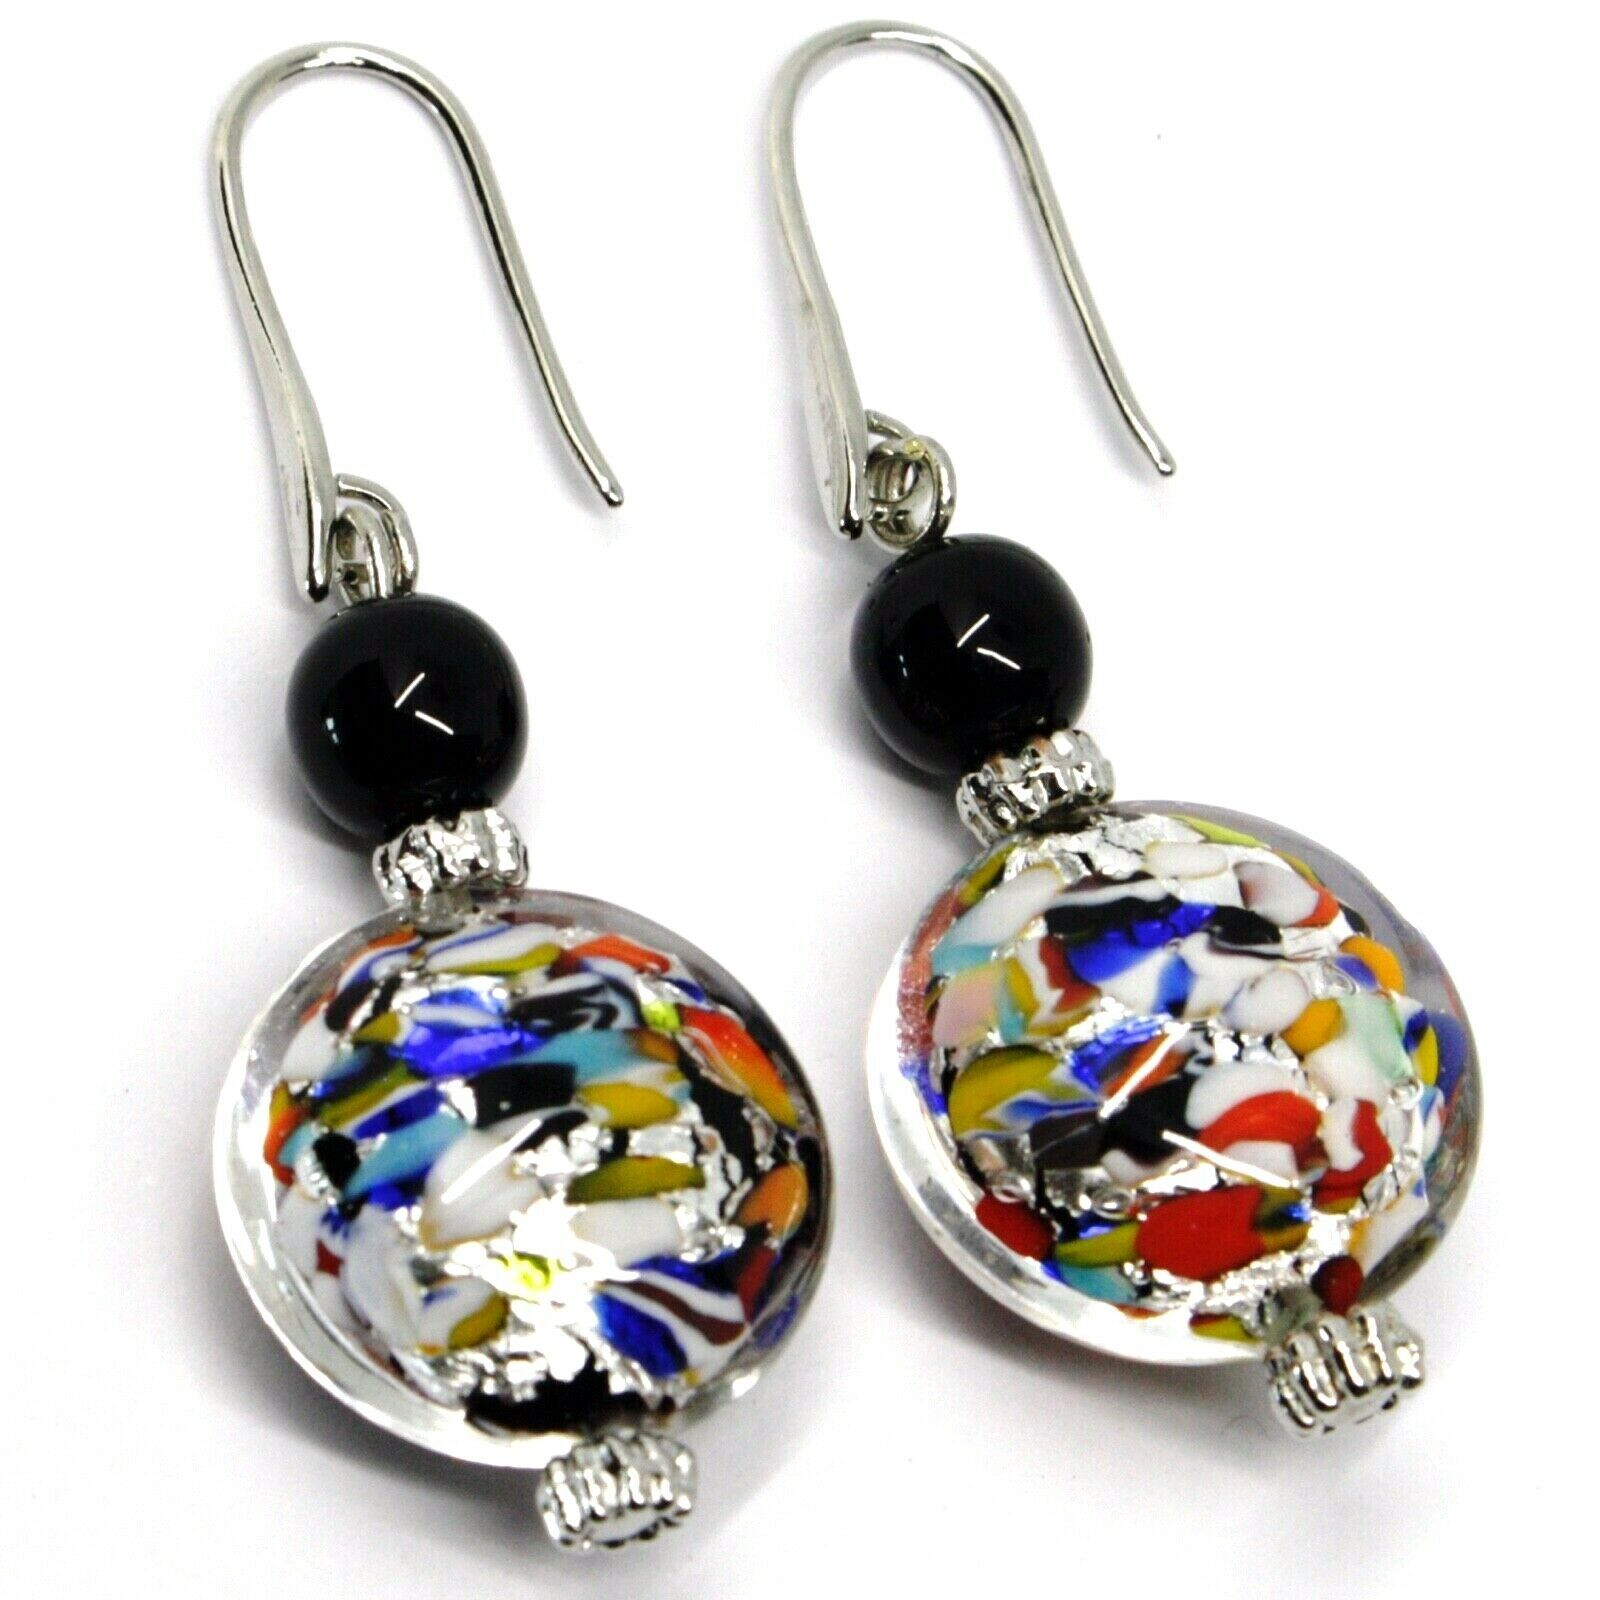 PENDANT EARRINGS MACULATE MULTI COLOR MURANO GLASS DISC, SILVER LEAF, ITALY